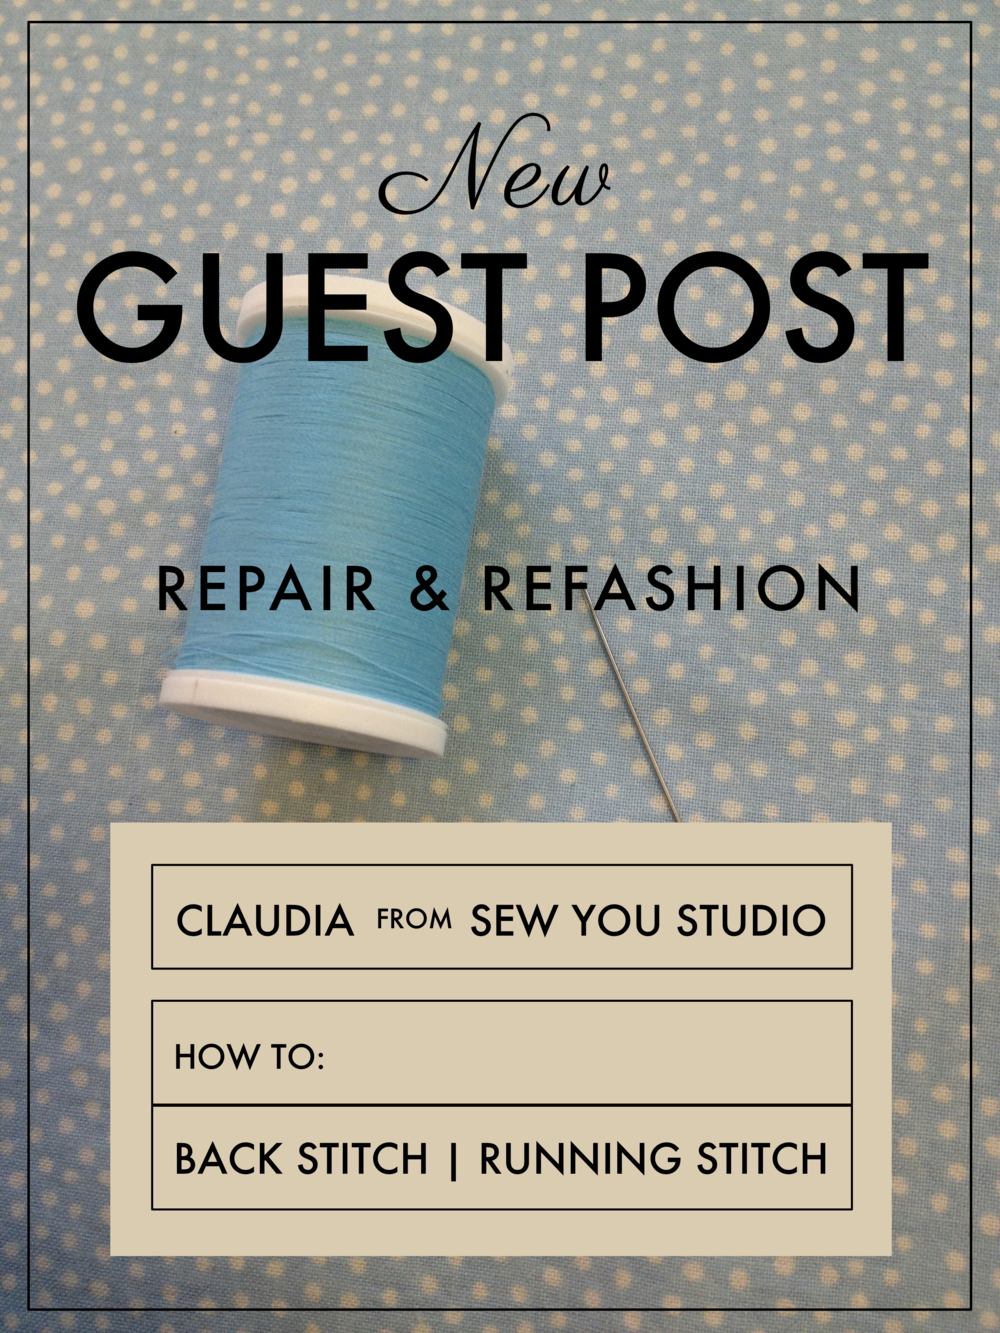 Repair & Refashion with Claudia from Sew You Studio via The Note Passer